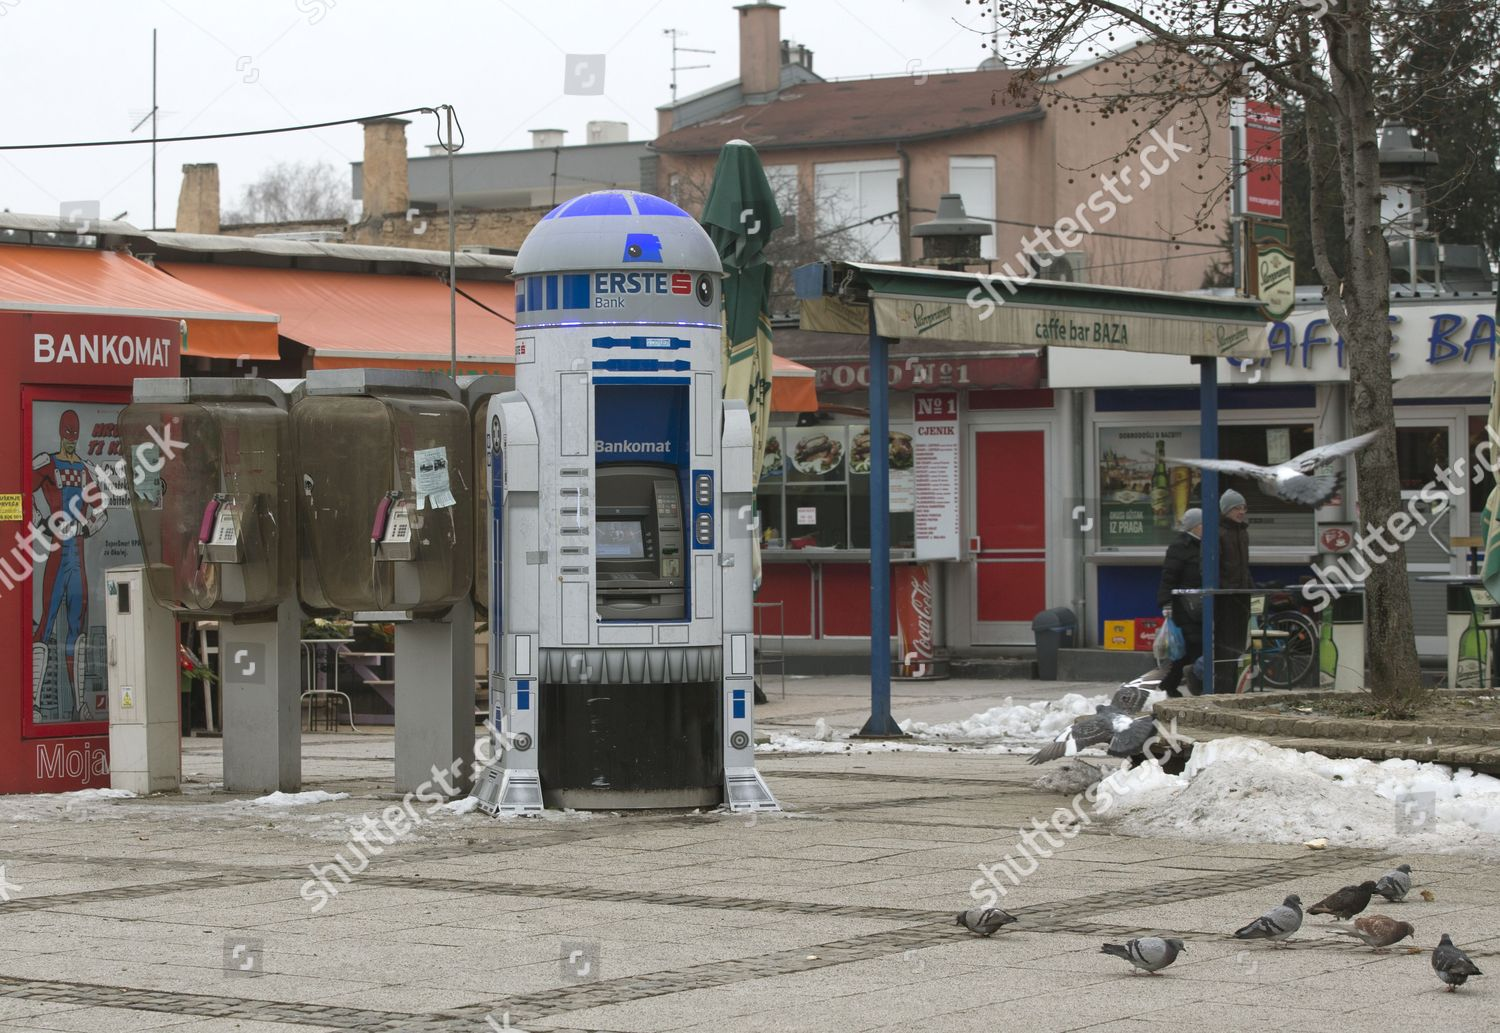 Atm Erste Bank Form R2d2 Popular Character Editorial Stock Photo Stock Image Shutterstock